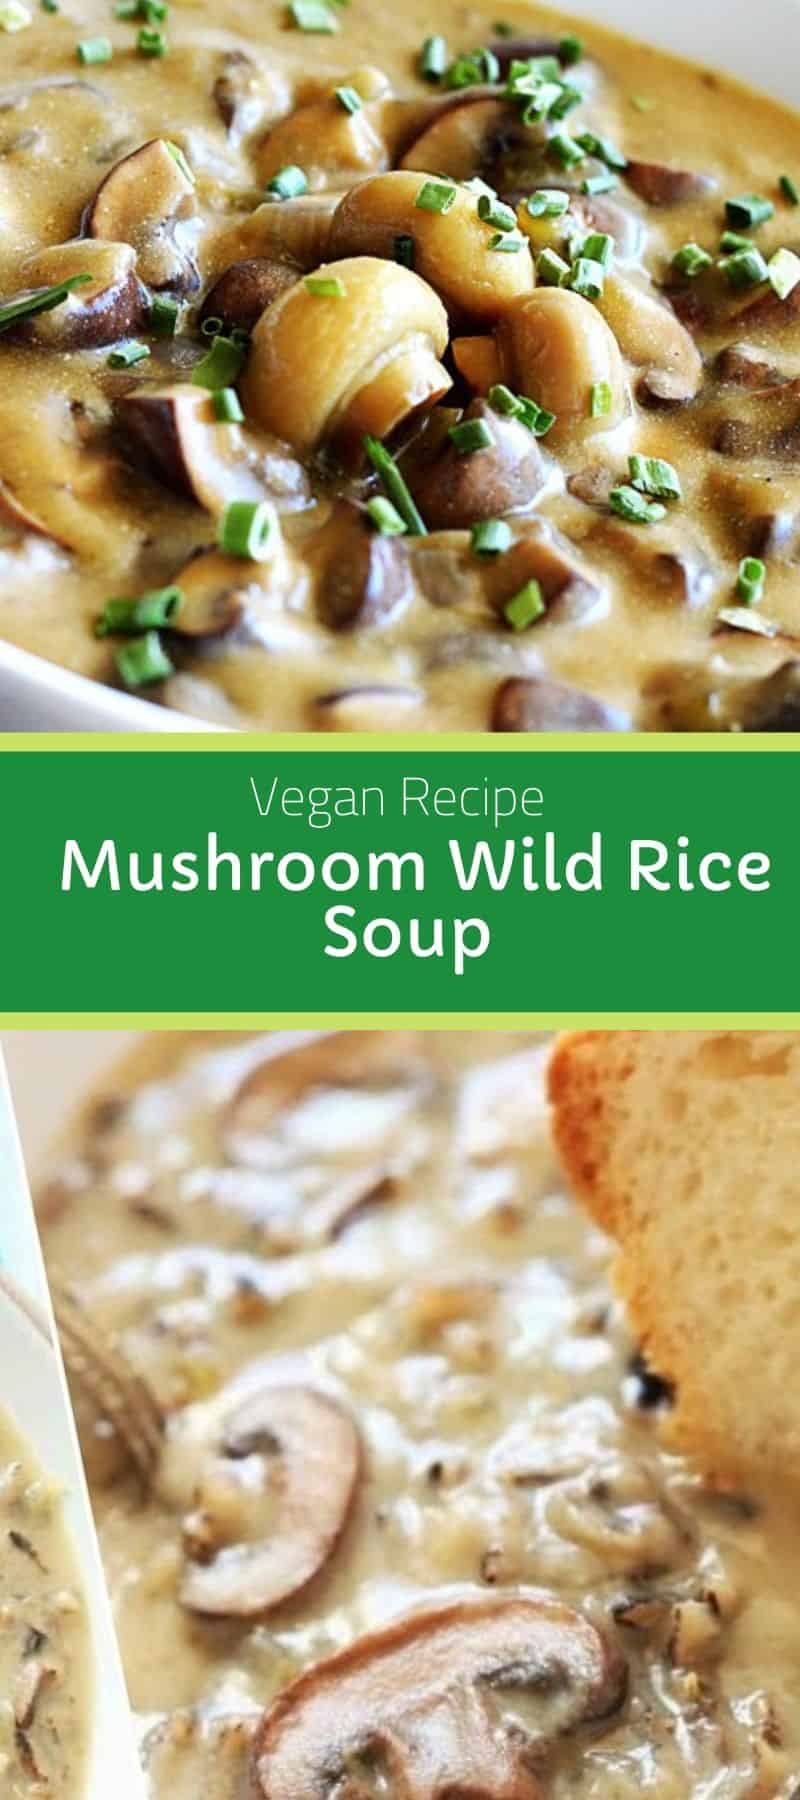 Vegan Mushroom Wild Rice Soup Recipe 3